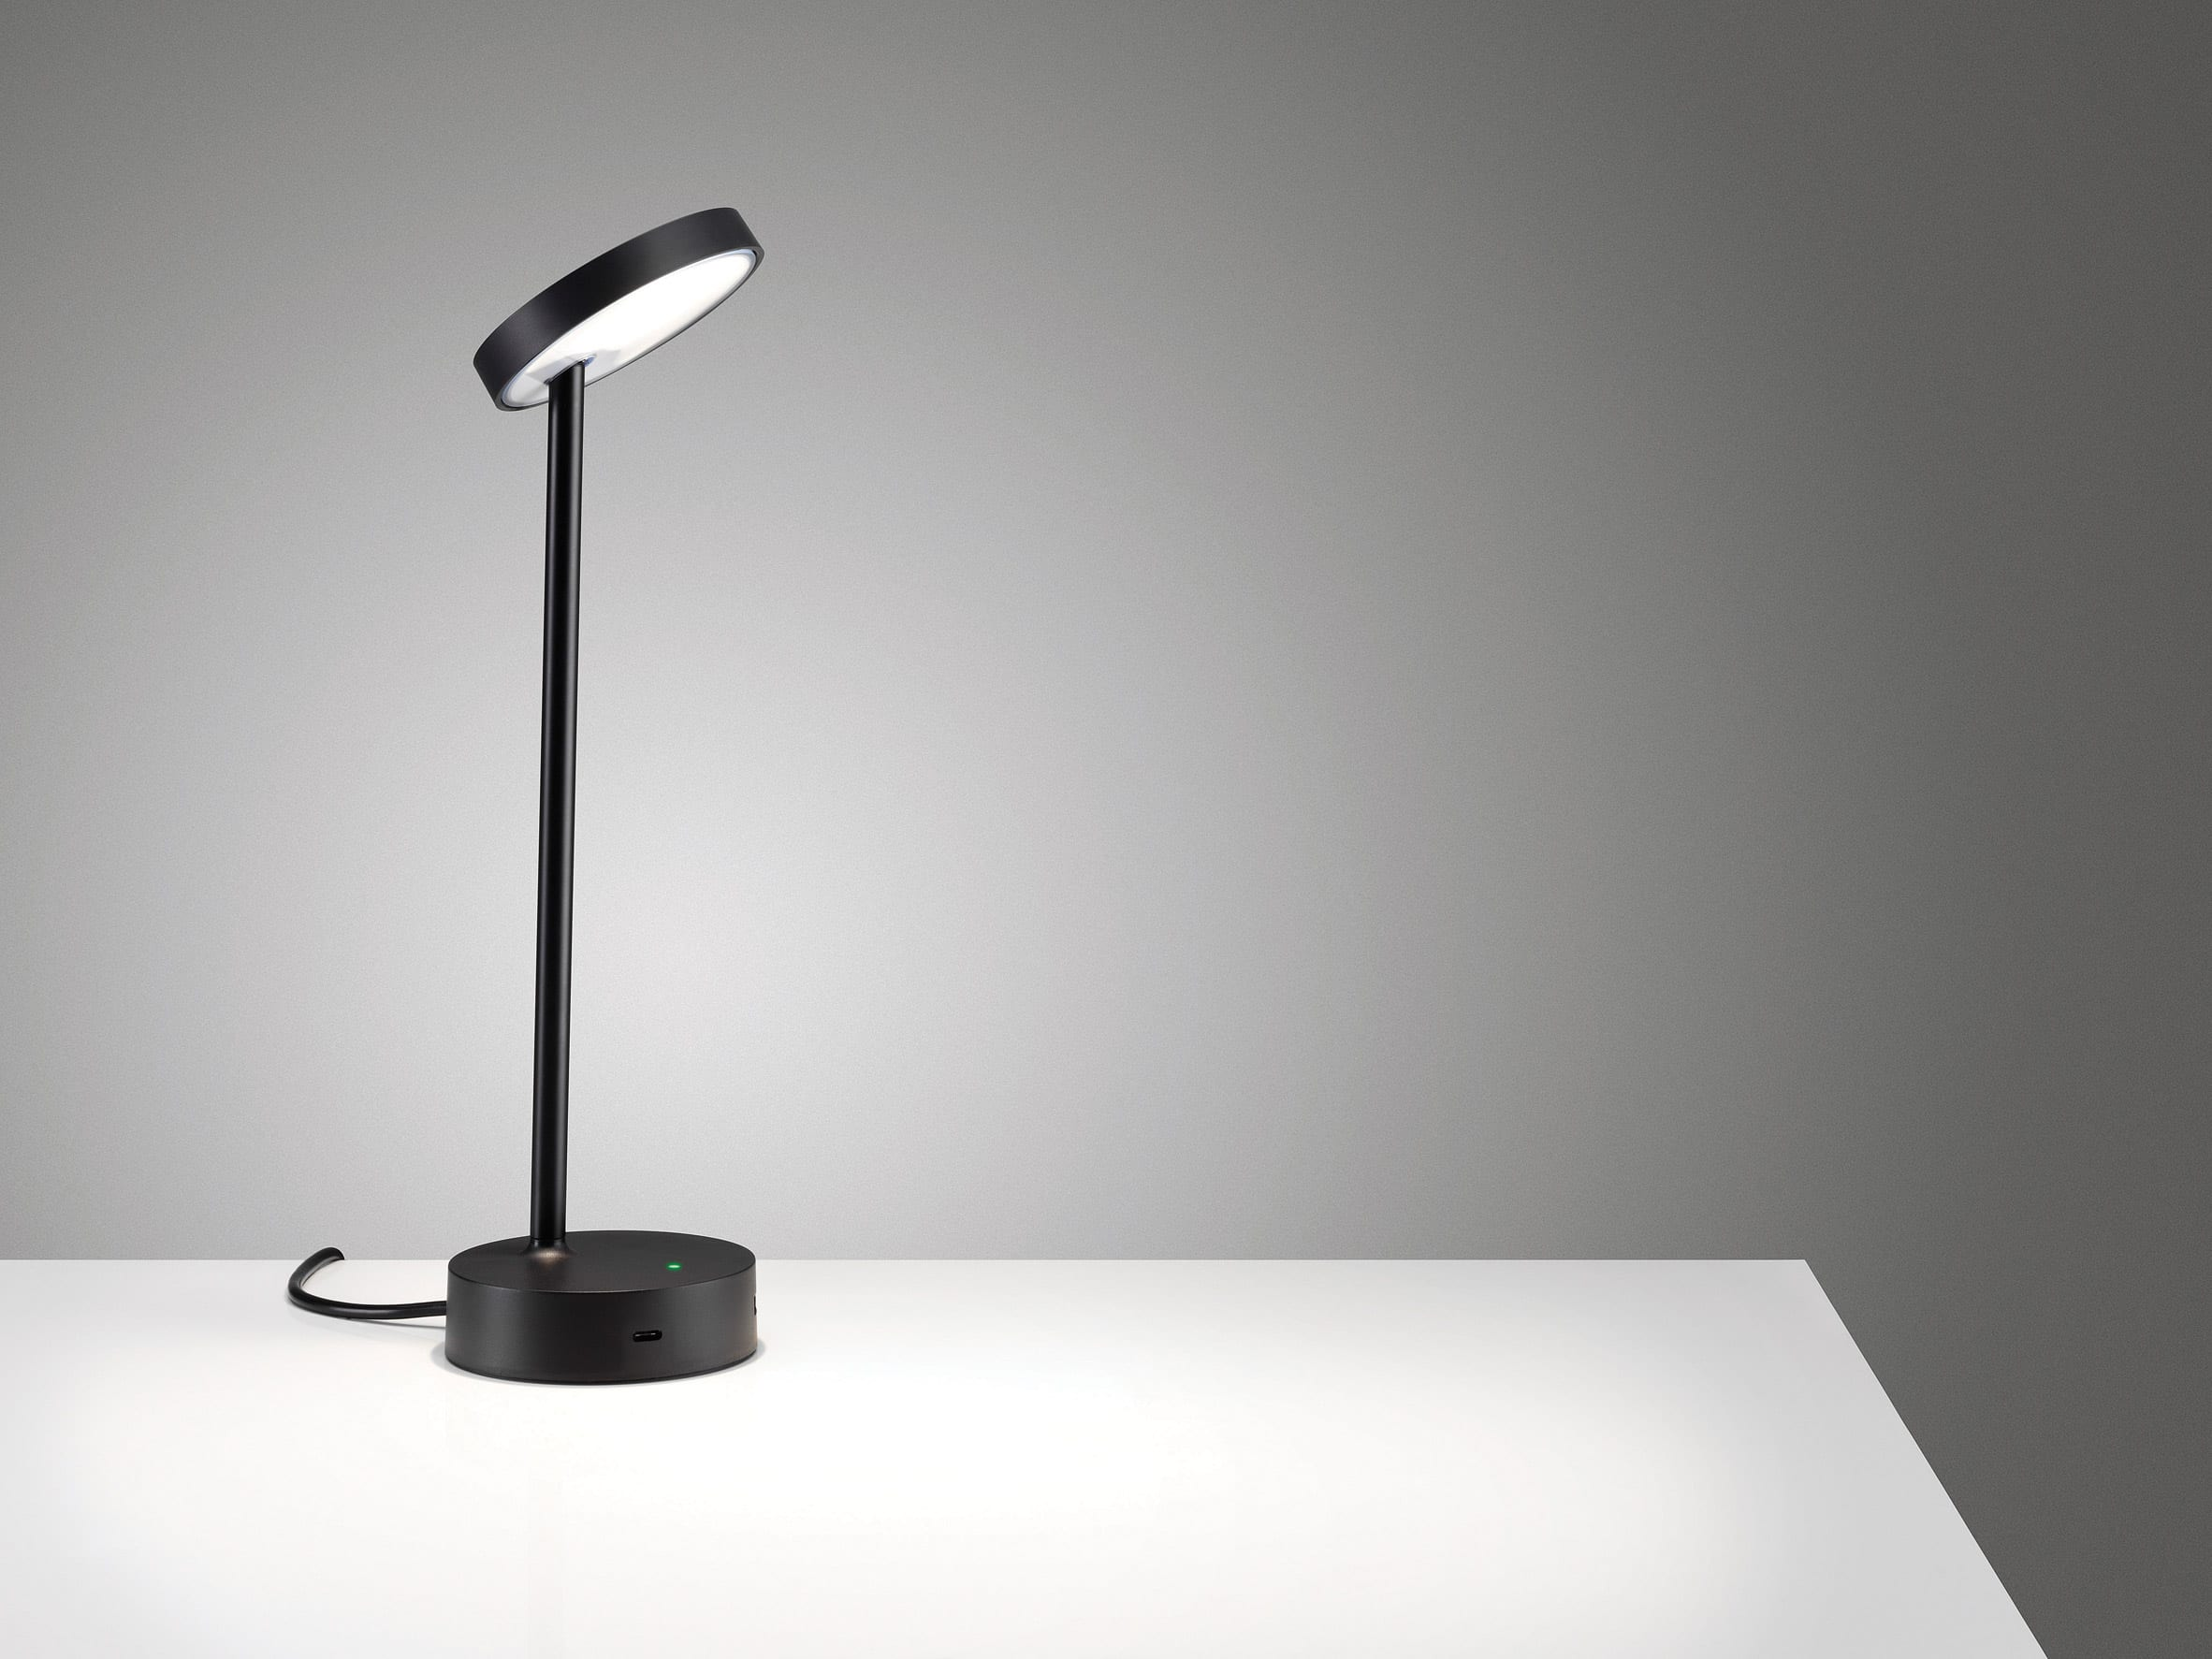 Lolly desk light by Colebrook Bosson Saunders